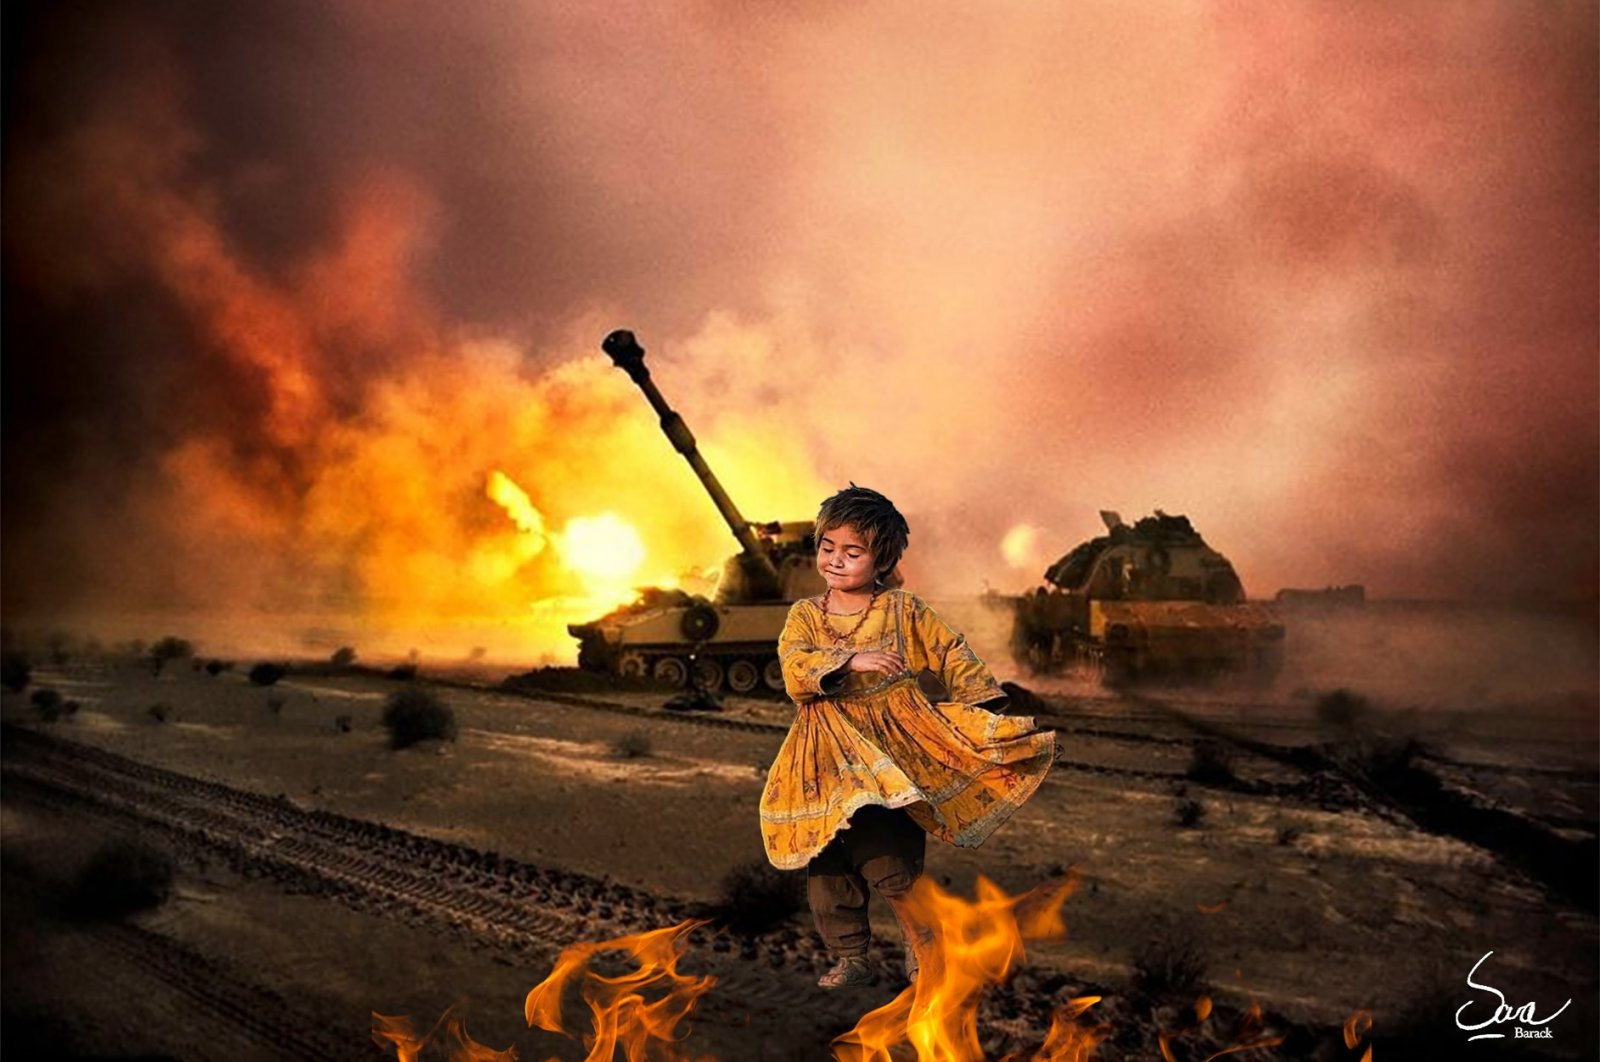 An illustration by Sara Barackzay shows a little girl in a war scene. (AA PHOTO)